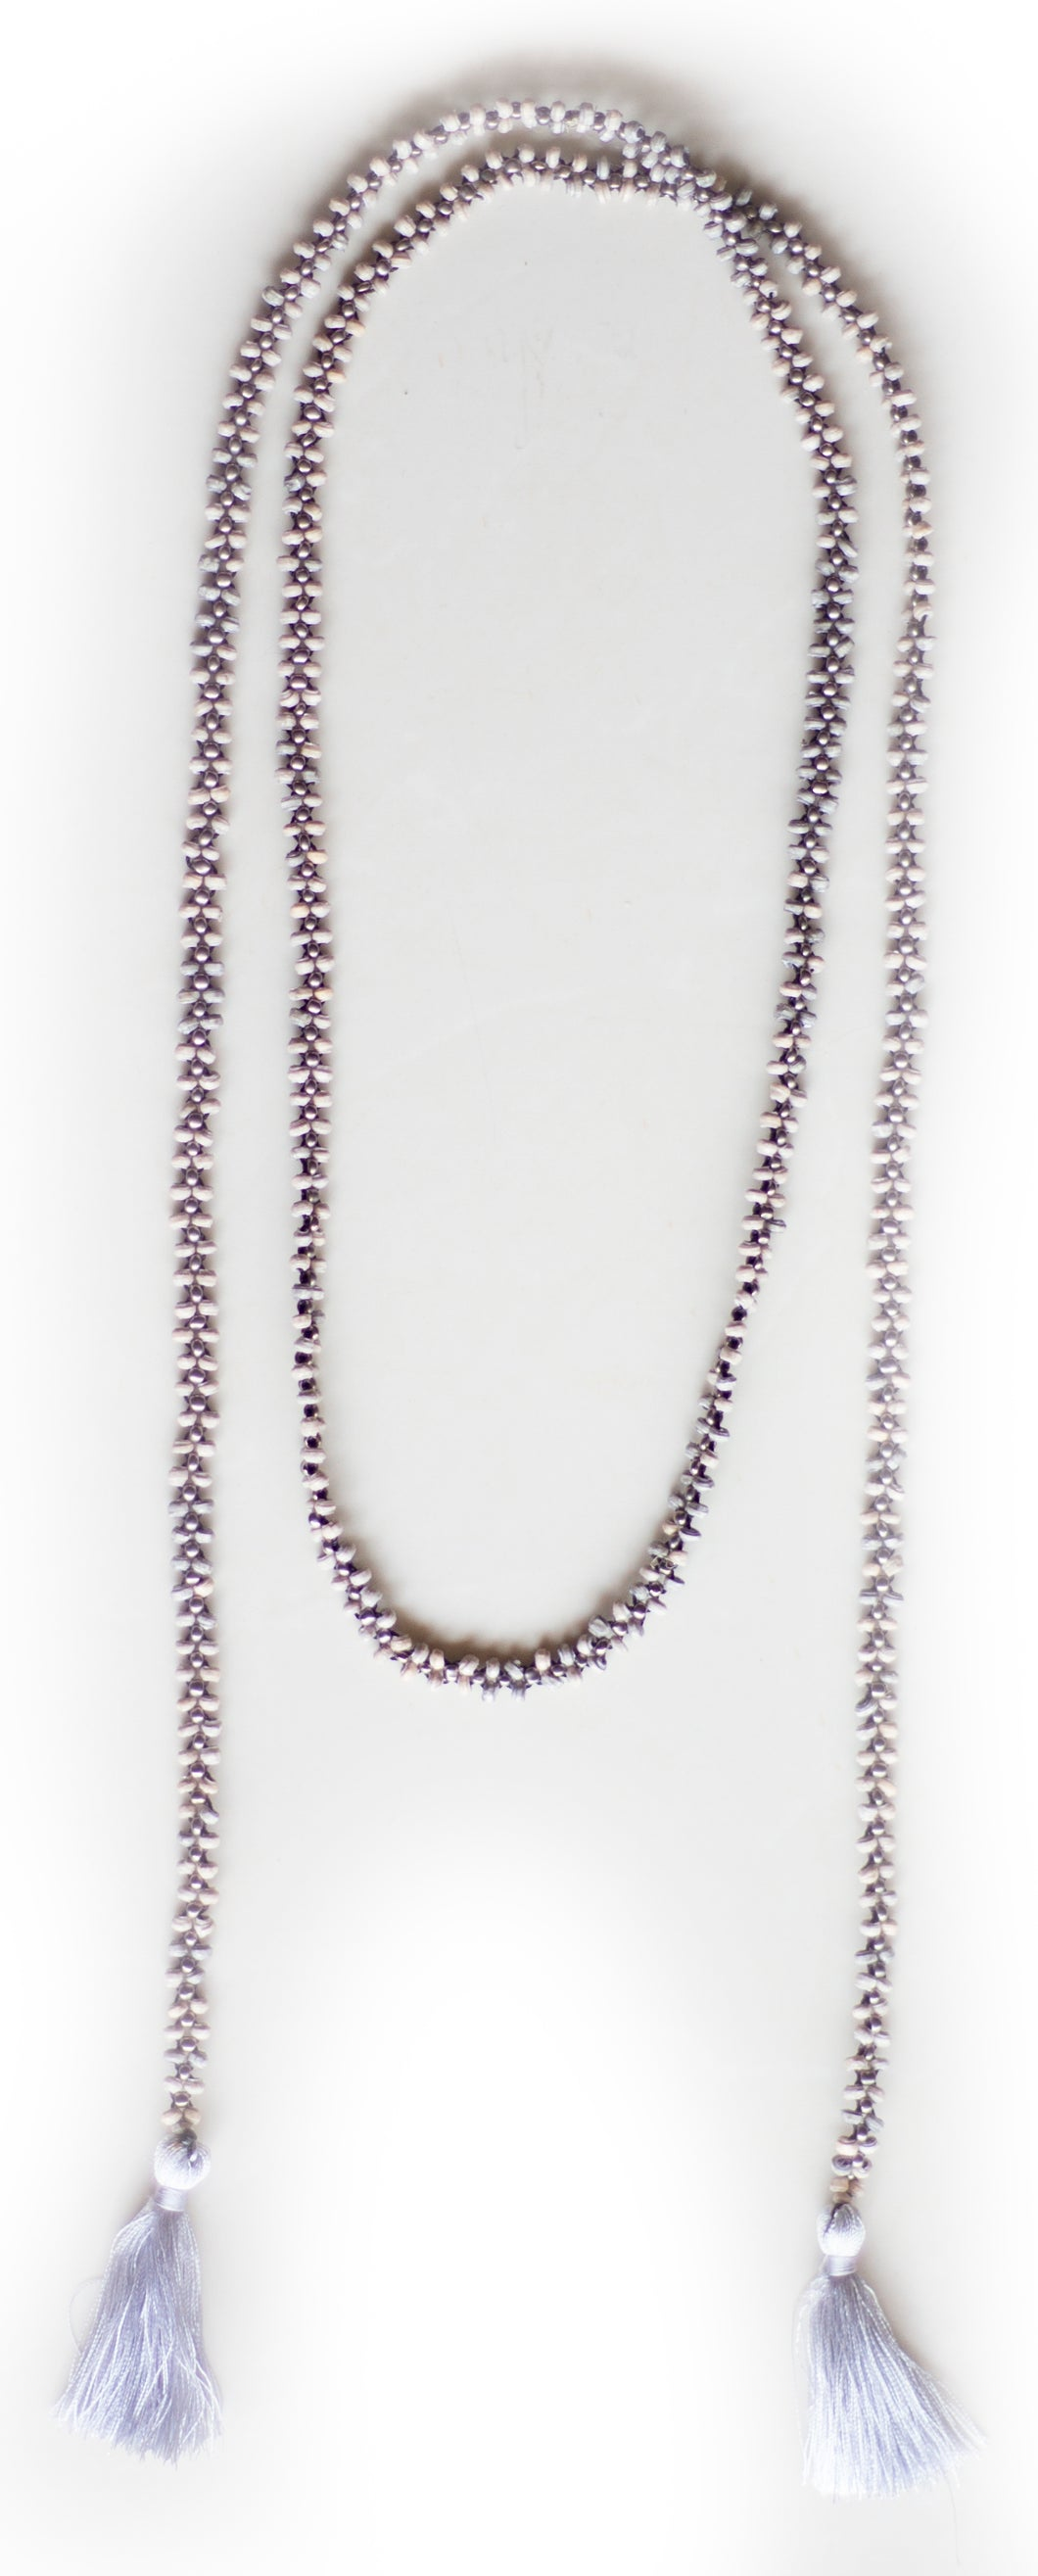 Upendo Necklace